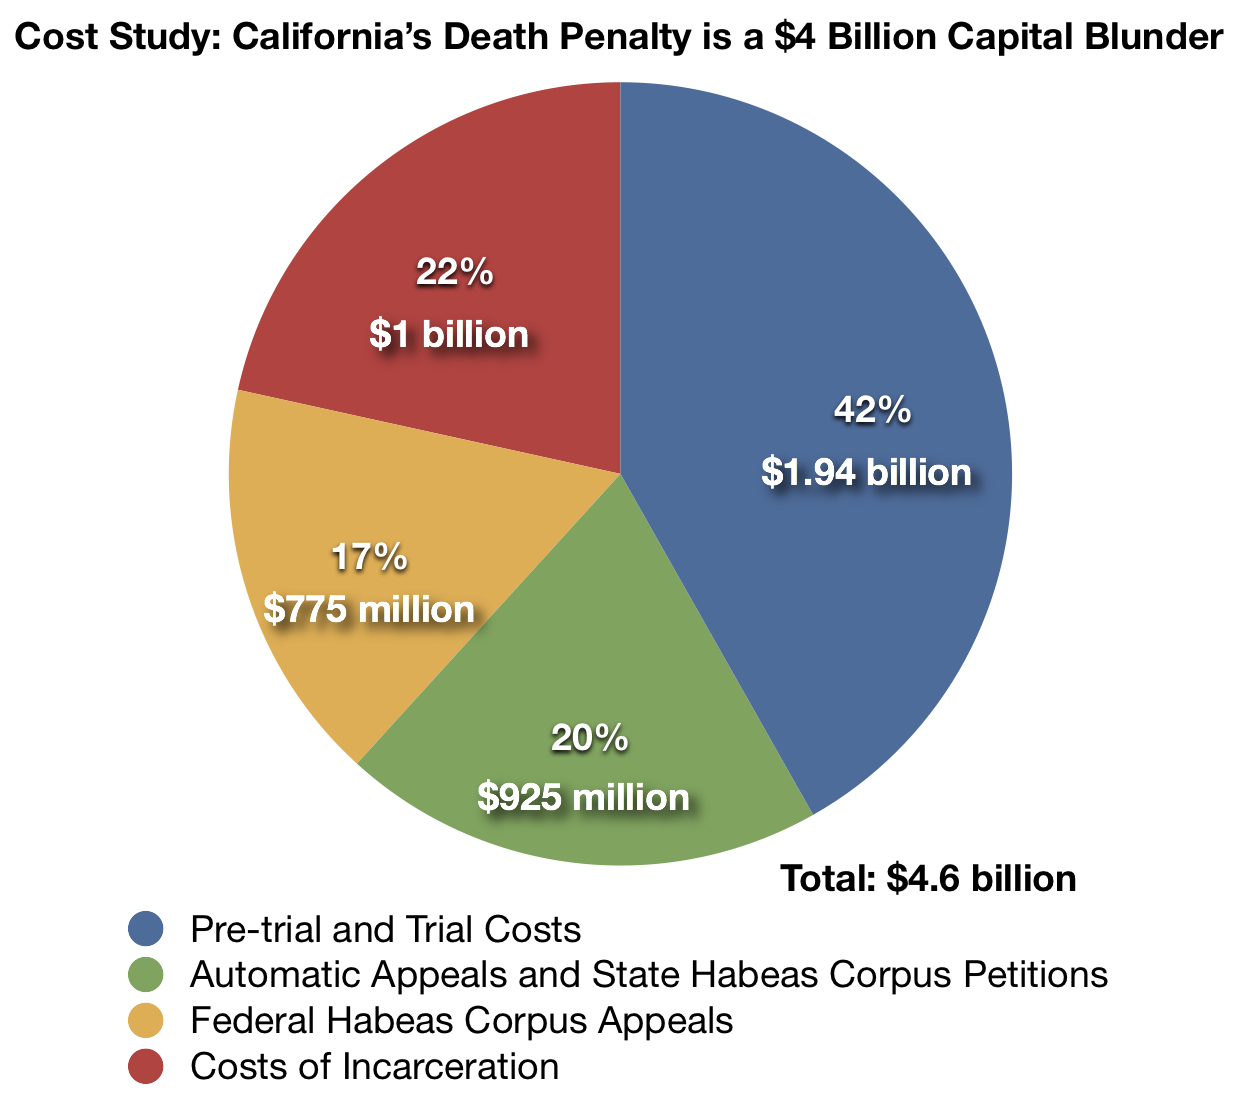 california cost study 2011 death penalty information center breakdown of costs in california s death penalty system